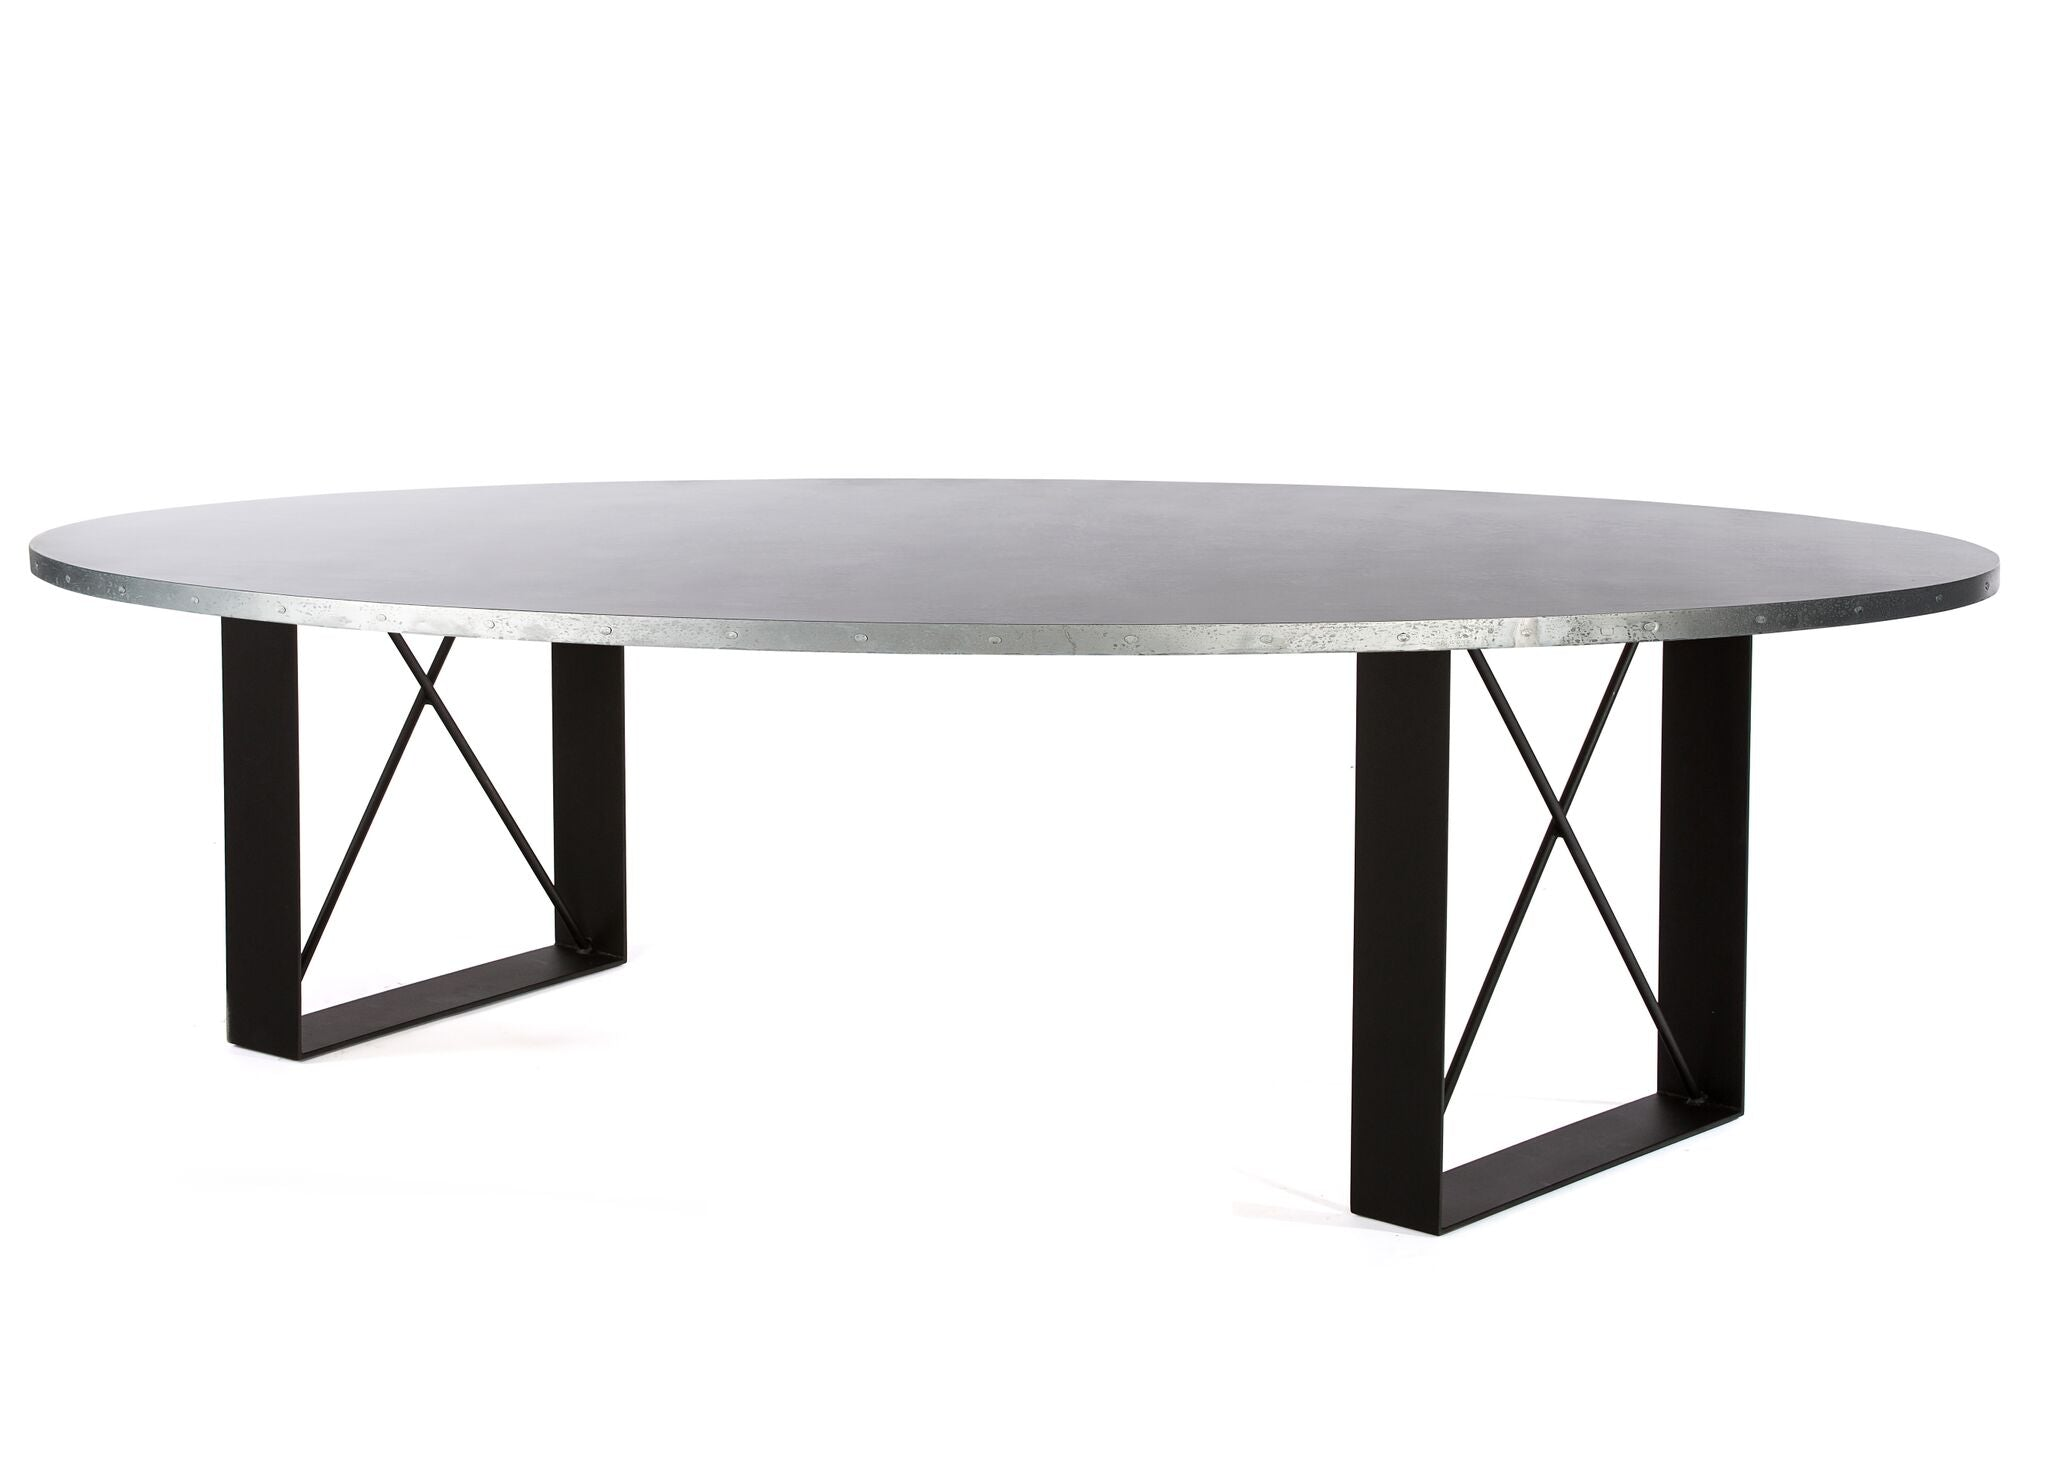 Zinc Oval Tables | Soho Table | CLASSIC | Black on Steel | CUSTOM SIZE L 108 W 43 H 30 | 1.75"